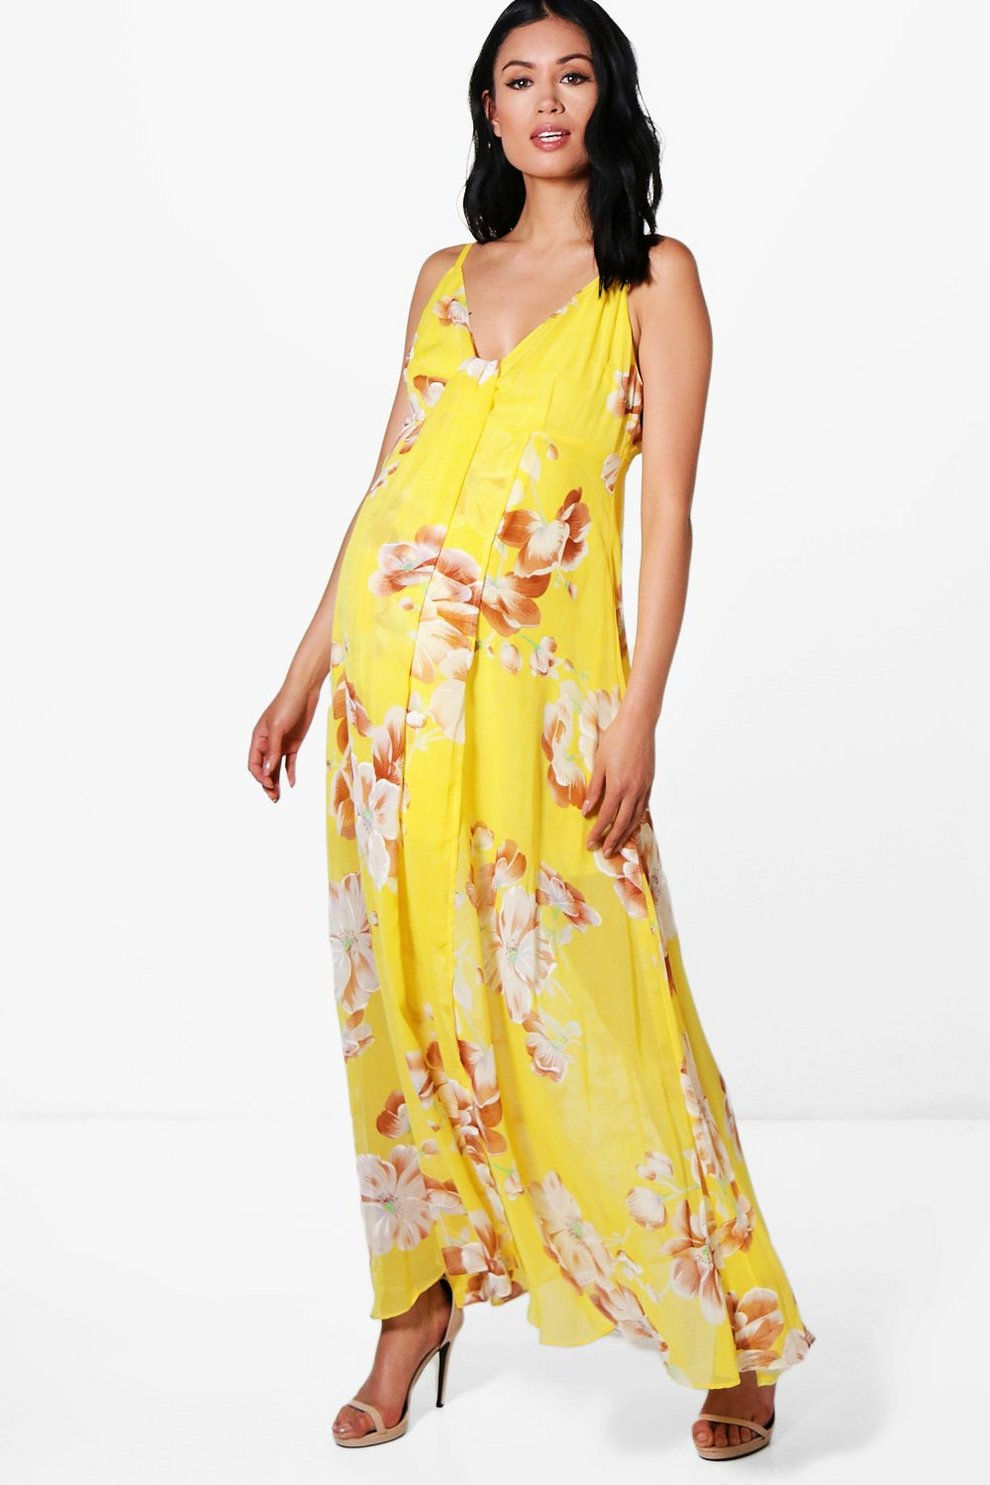 cc71e0e129d8 Maternity Wedding Floral Printed Maxi Dress | Boohoo